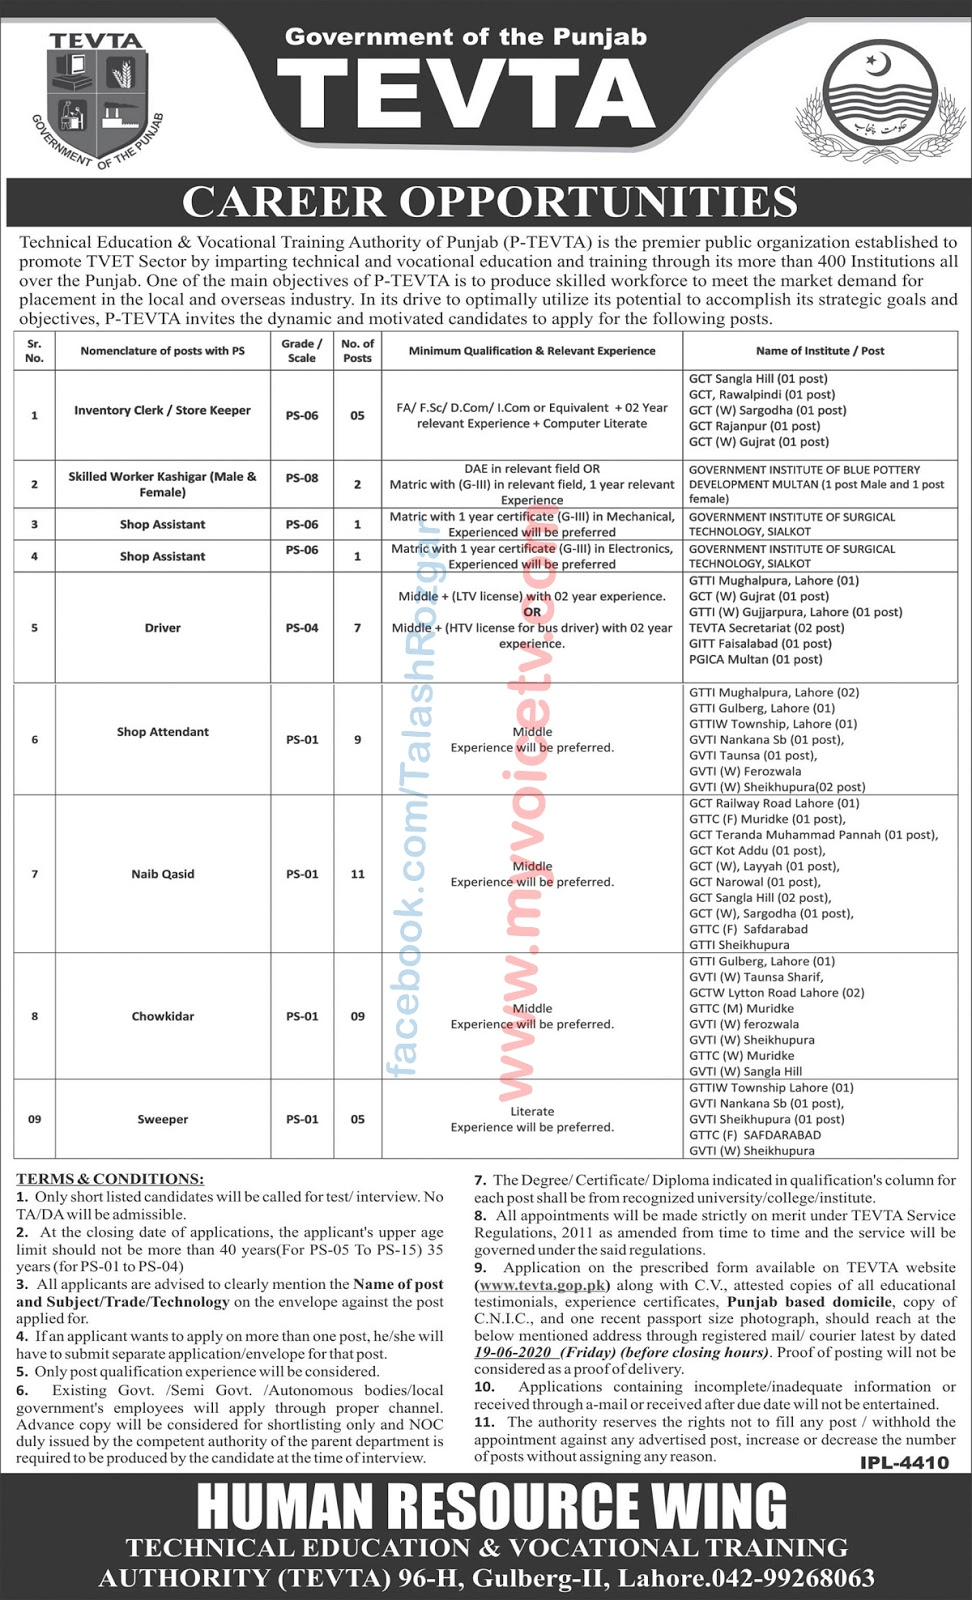 Latest #Jobs #Career_Opportunities at TEVTA - Govt of the Punjab (51 Posts)  - For details please visit this link